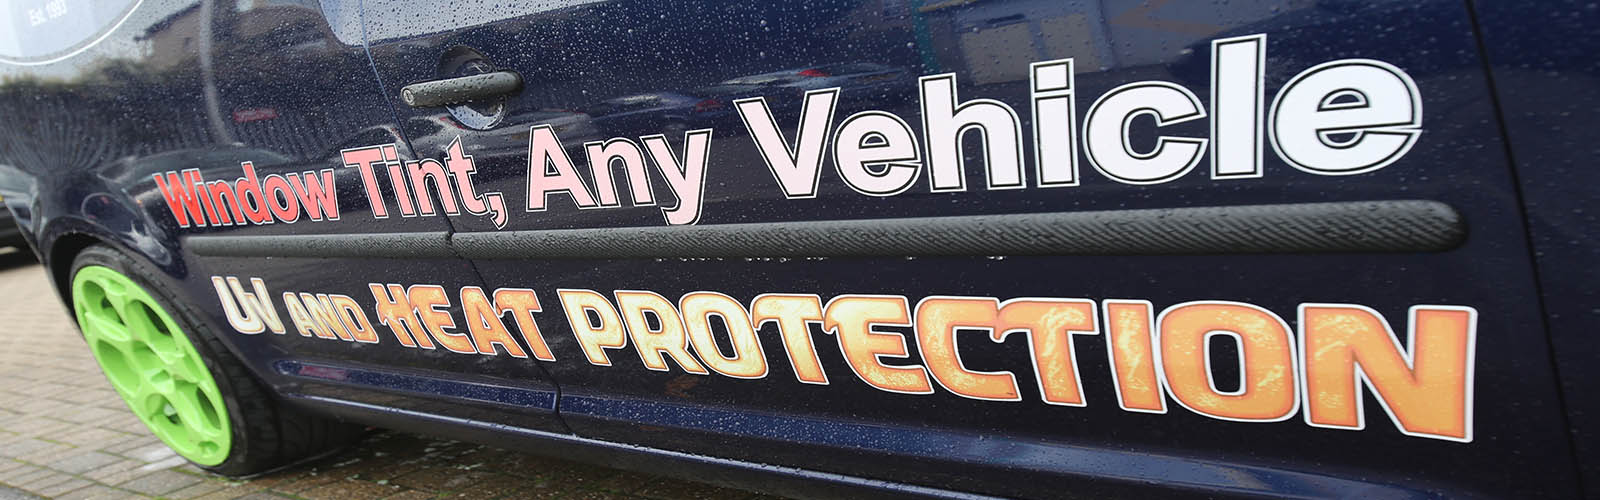 south coast tints, ultimate protection